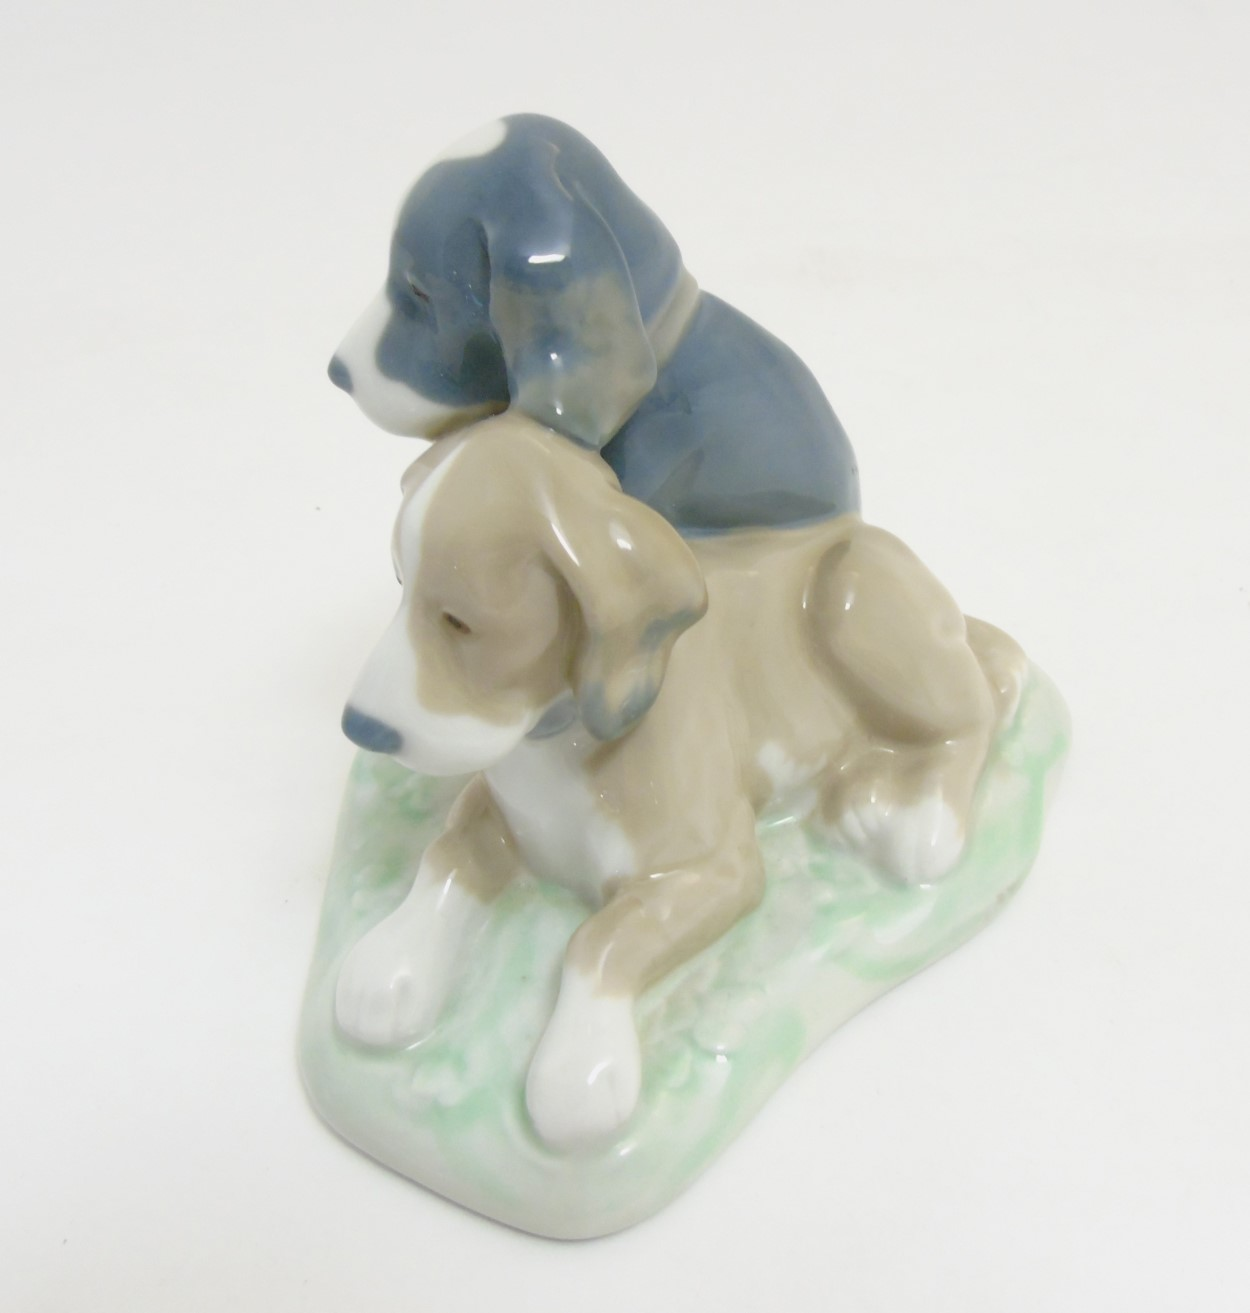 Lot 76 - A Lladro 'Nao' figurine of two dogs, makers mark to base,